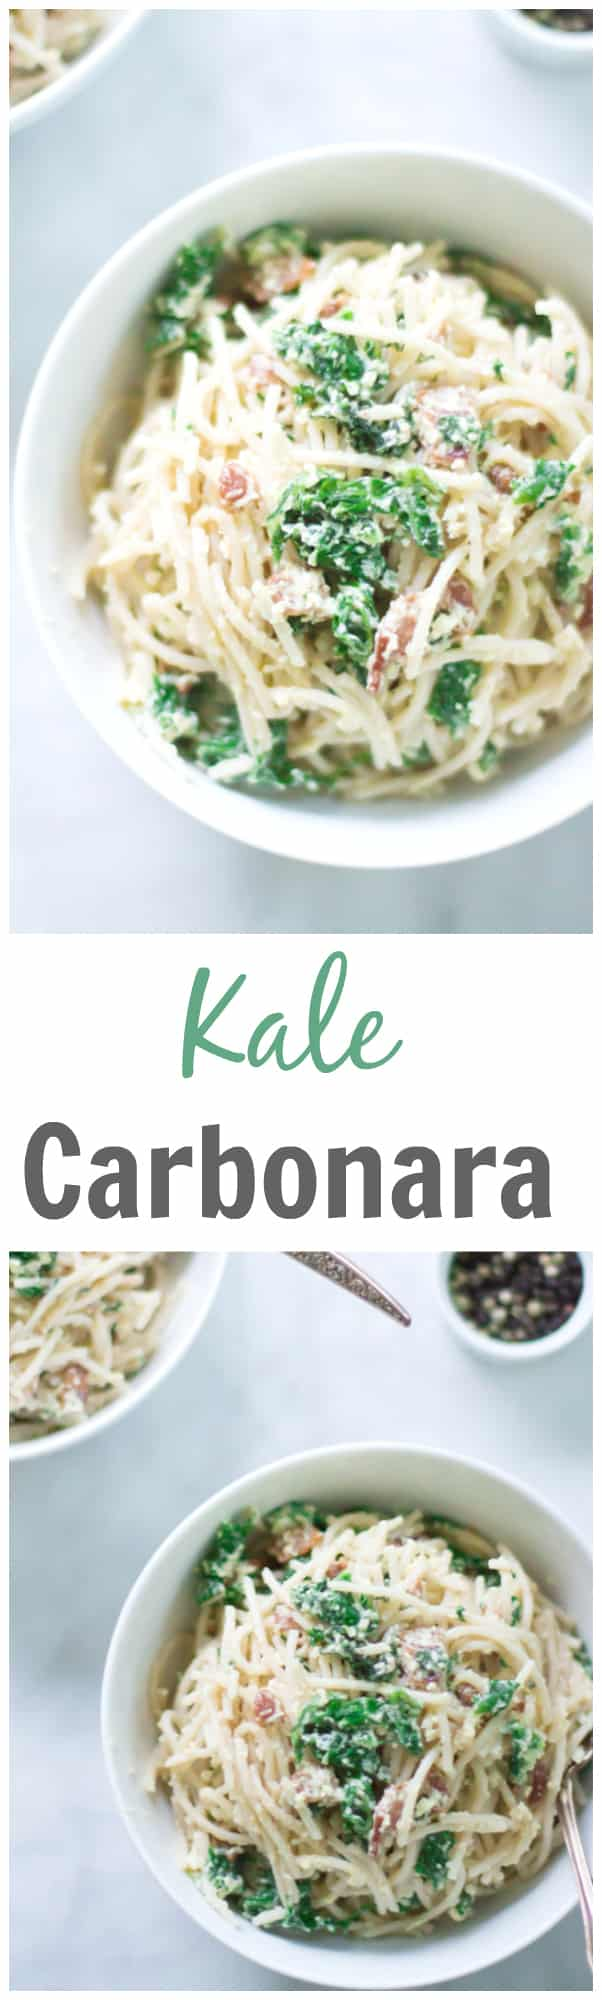 Kale Carbonara - Make this classic Italian Carbonara recipe packed with eggs, cheese, bacon and kale. This is definitely a super easy, quick and rich recipe for dinner.